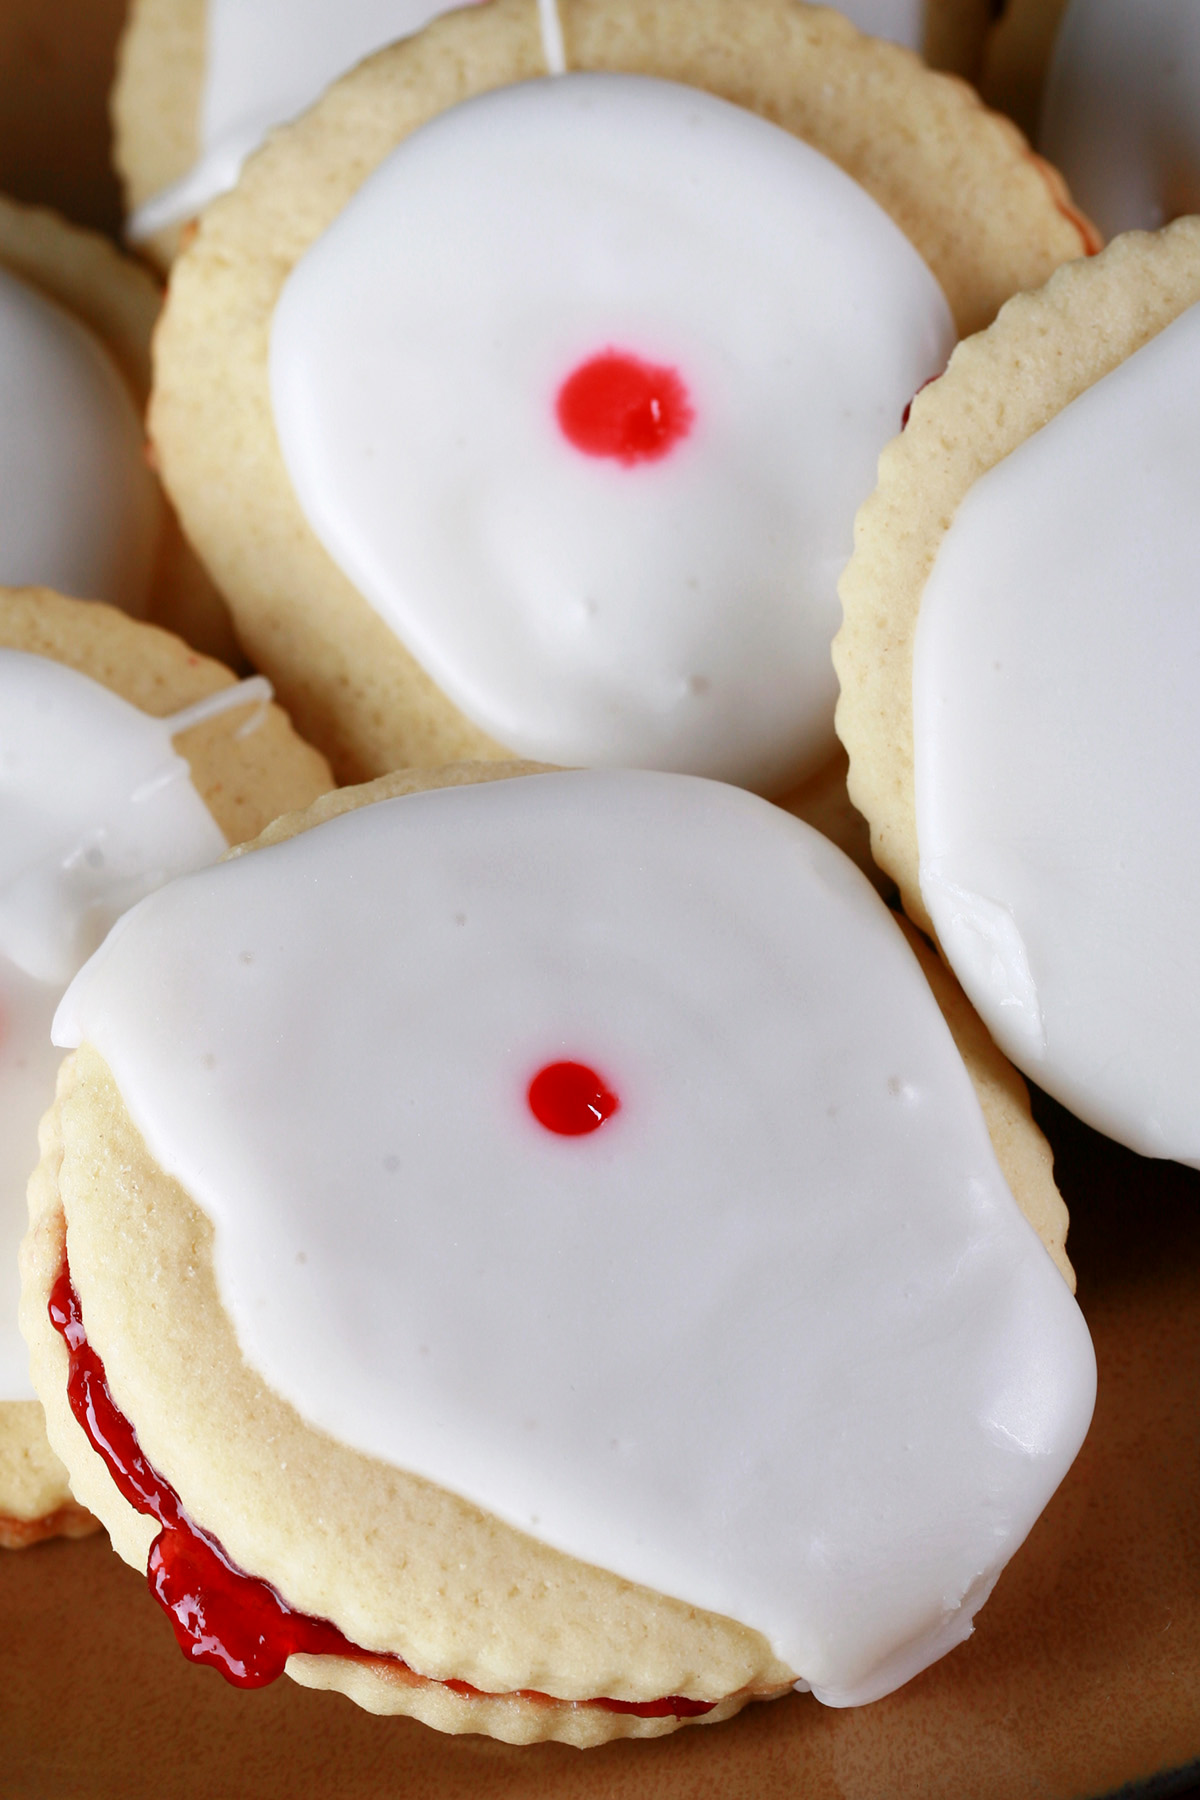 Close up view of a plate of Gluten-Free Empire Biscuits - sandwich cookies filled with raspberry jam, frosted with a white glaze, and finished off with a dot of red gel in the center.